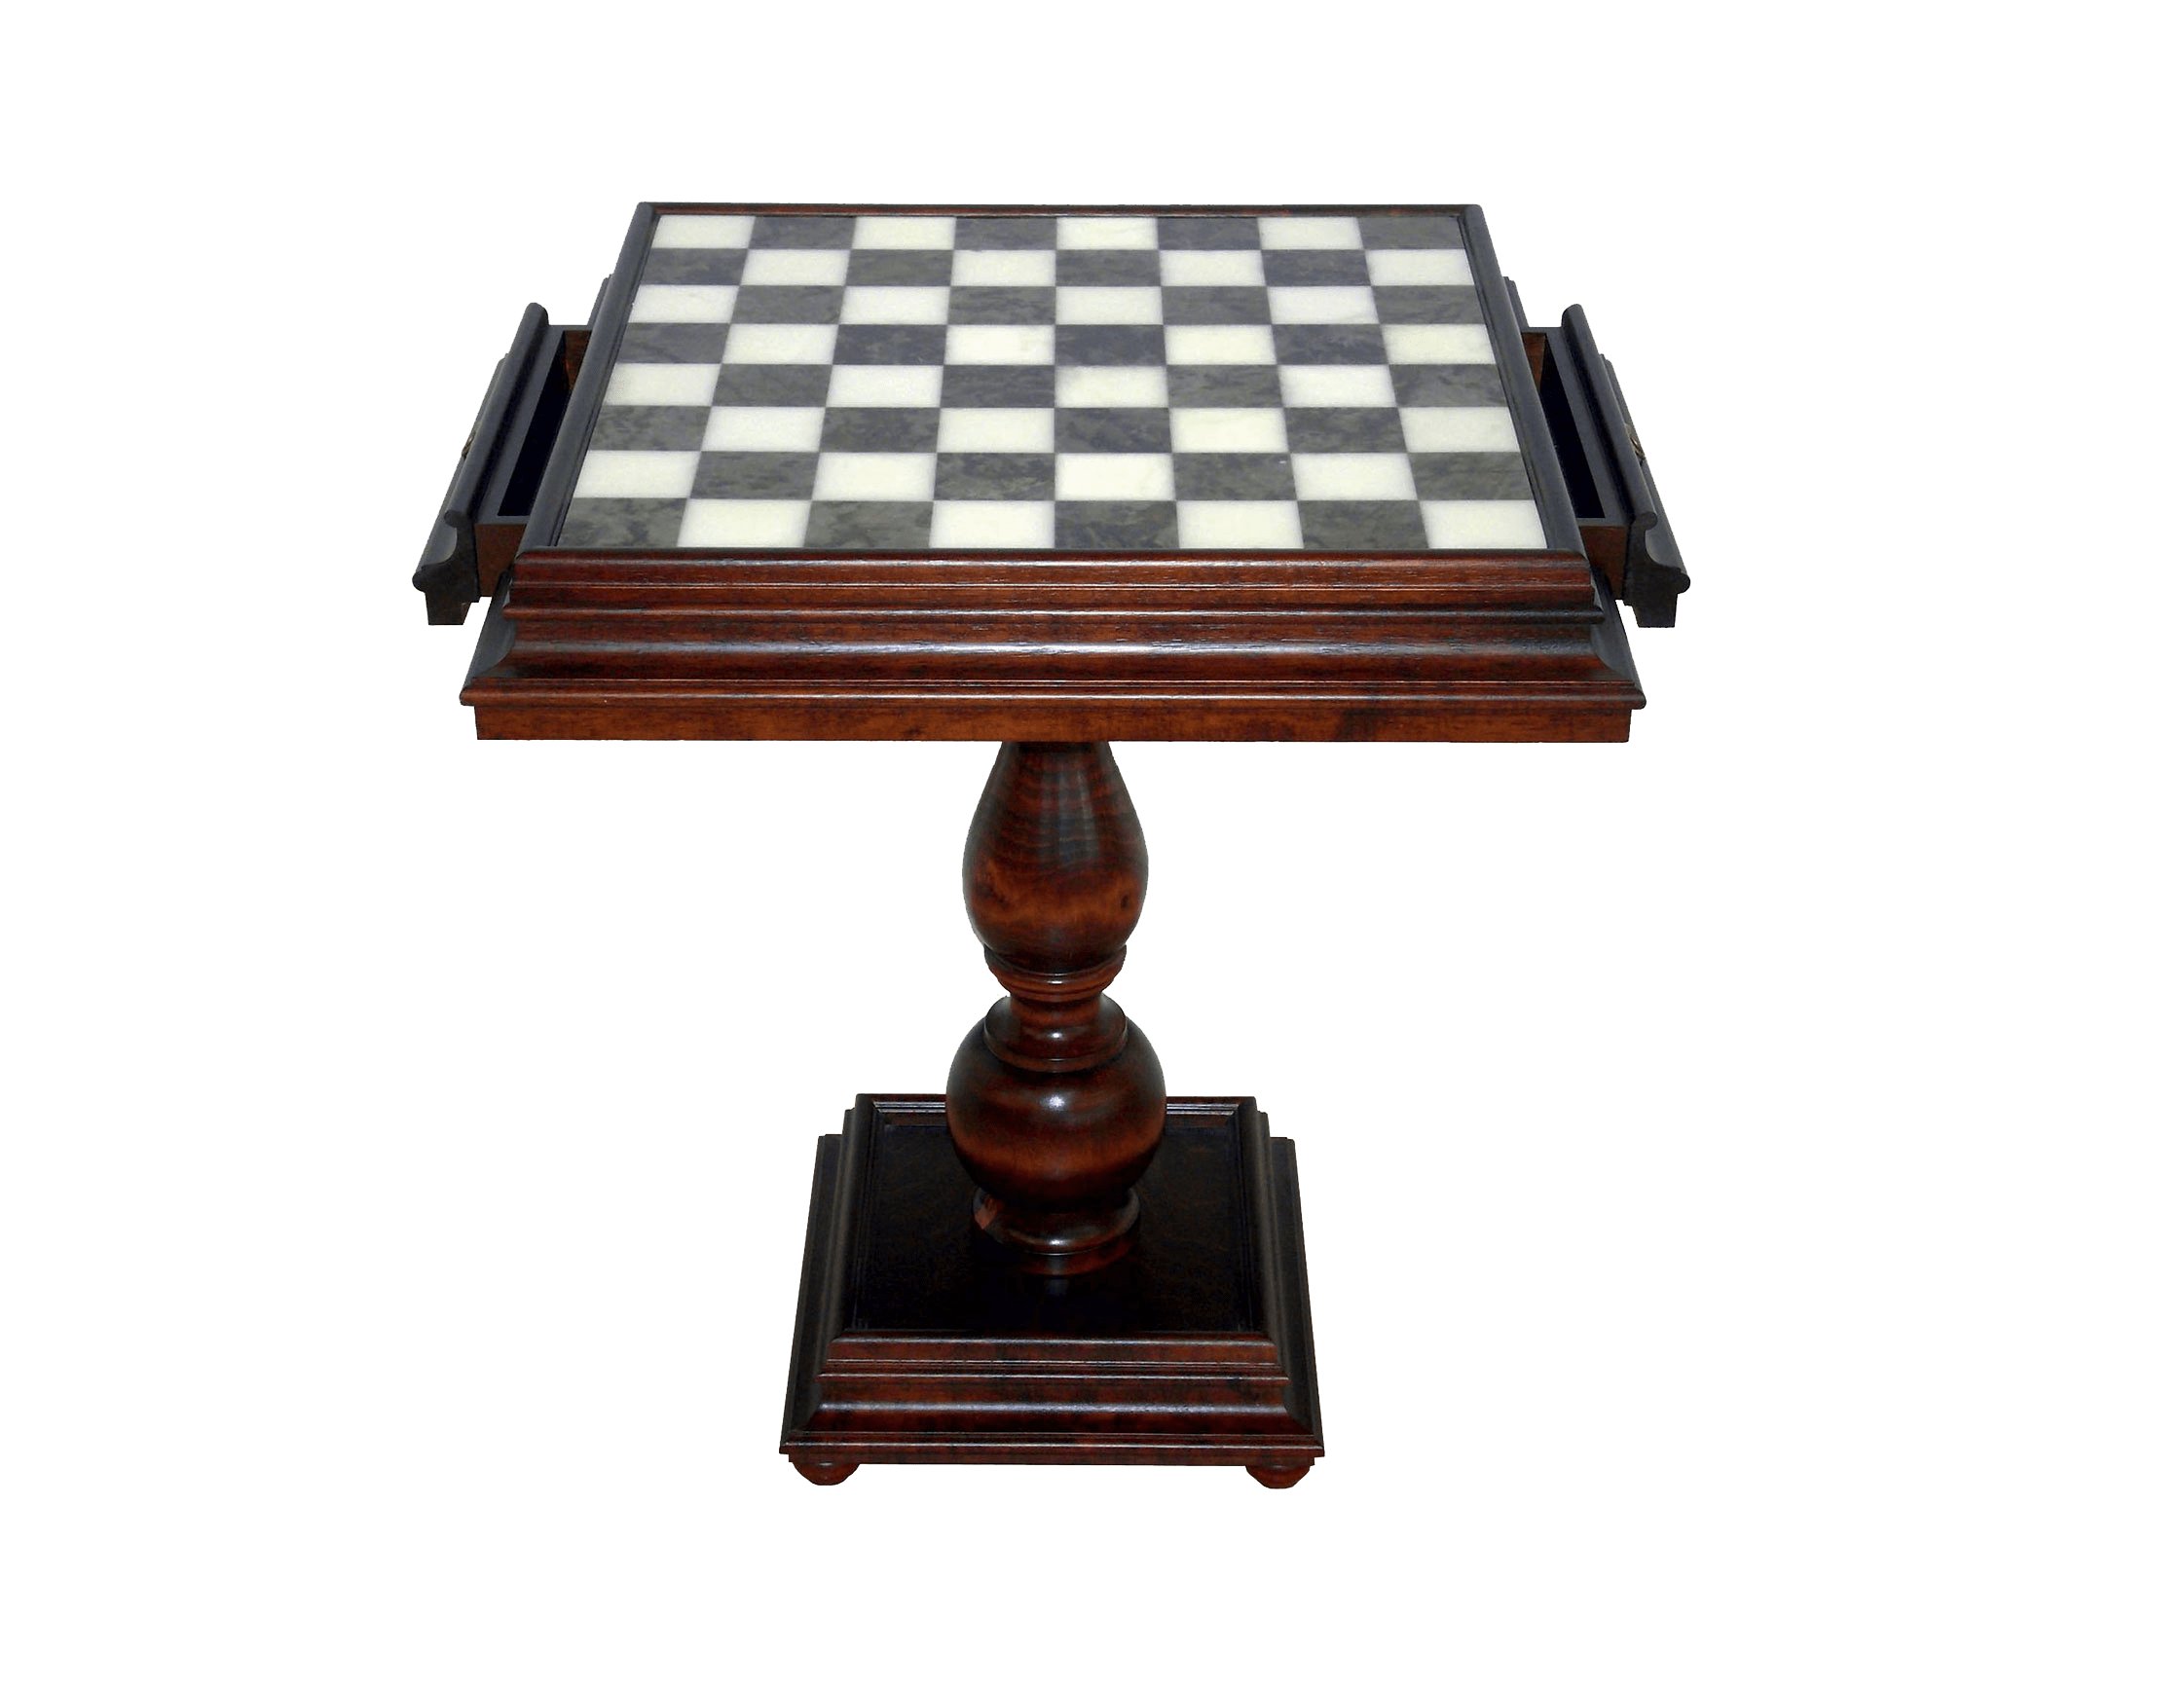 TAV520 Beech Chess Table with Alabaster and Marble Chess Board